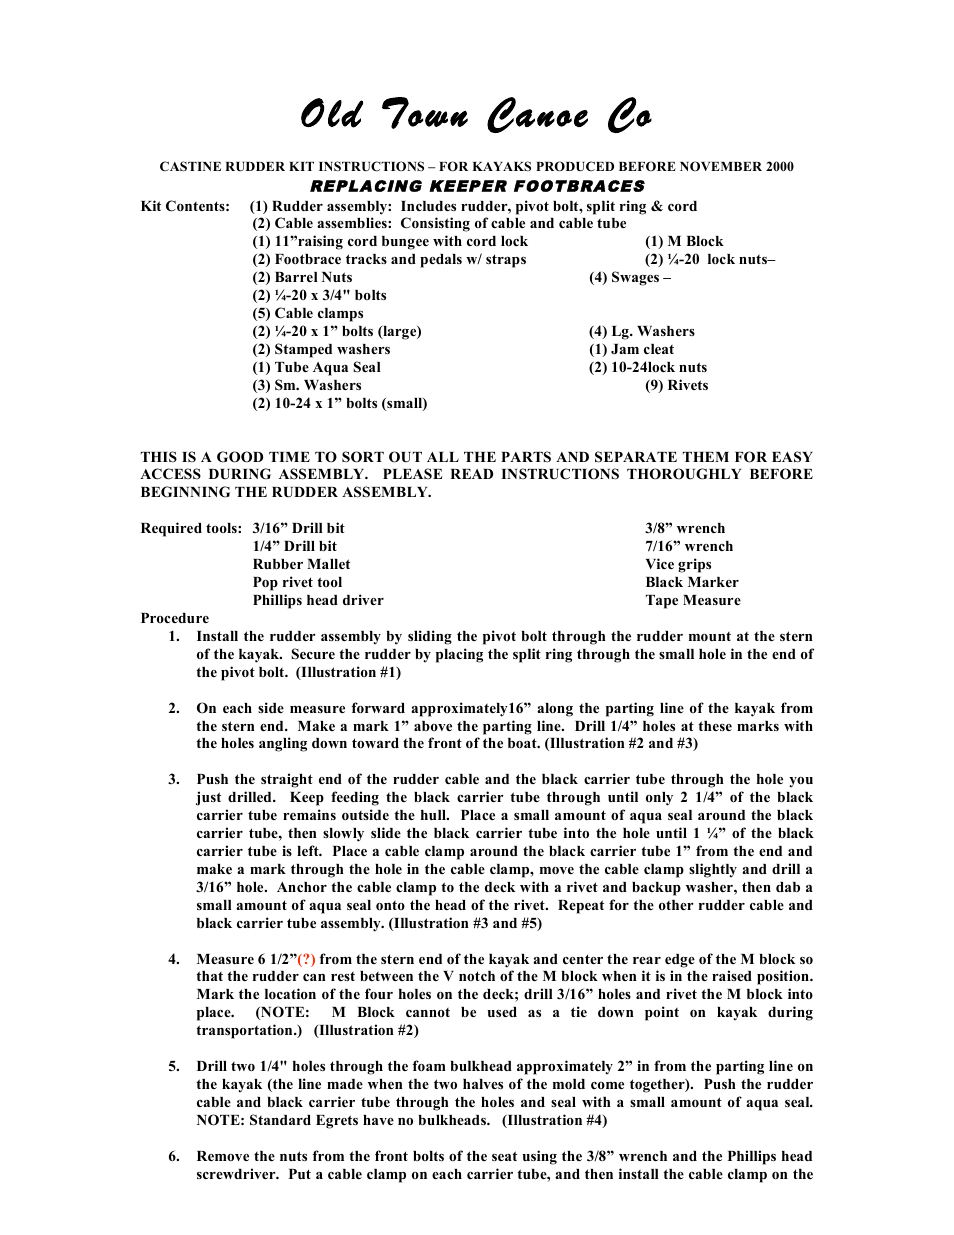 Old Town Castine Rudder User Manual | 4 pages